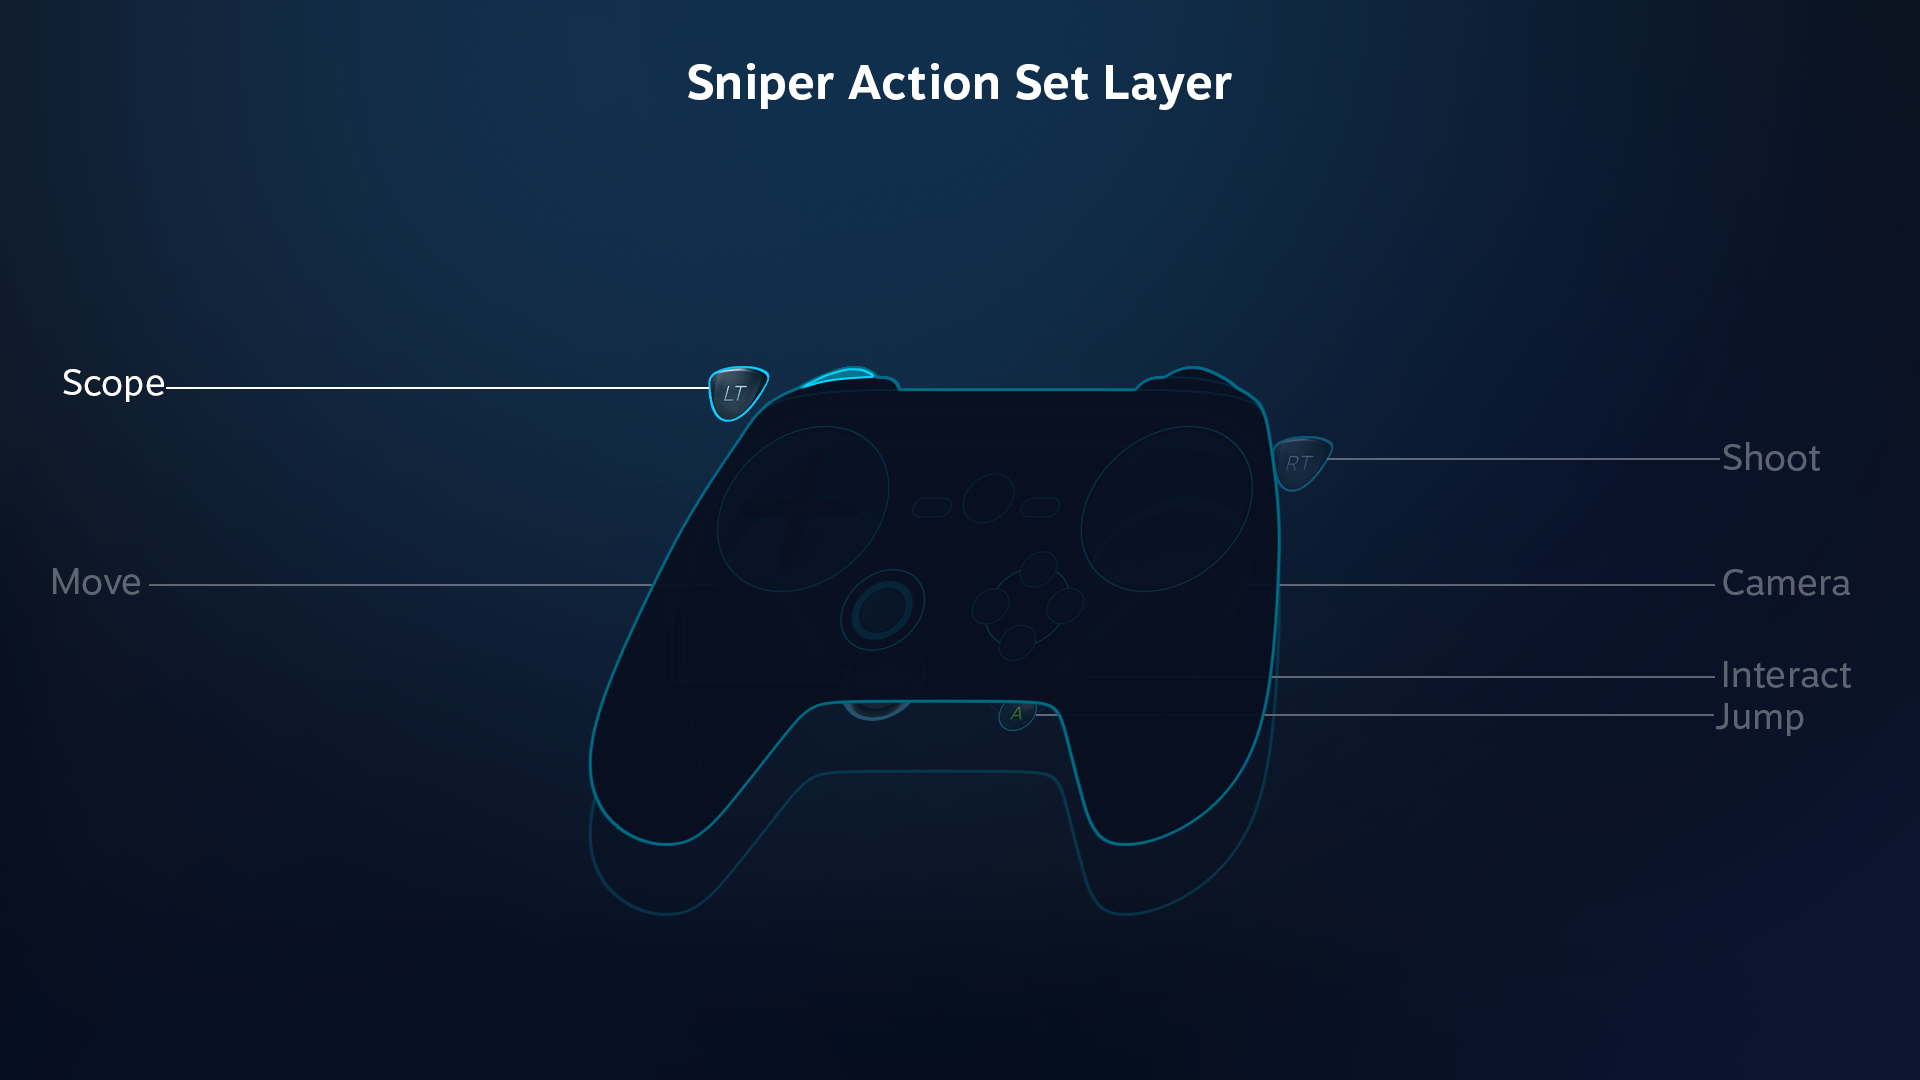 action_set_layers_sniper_2.png